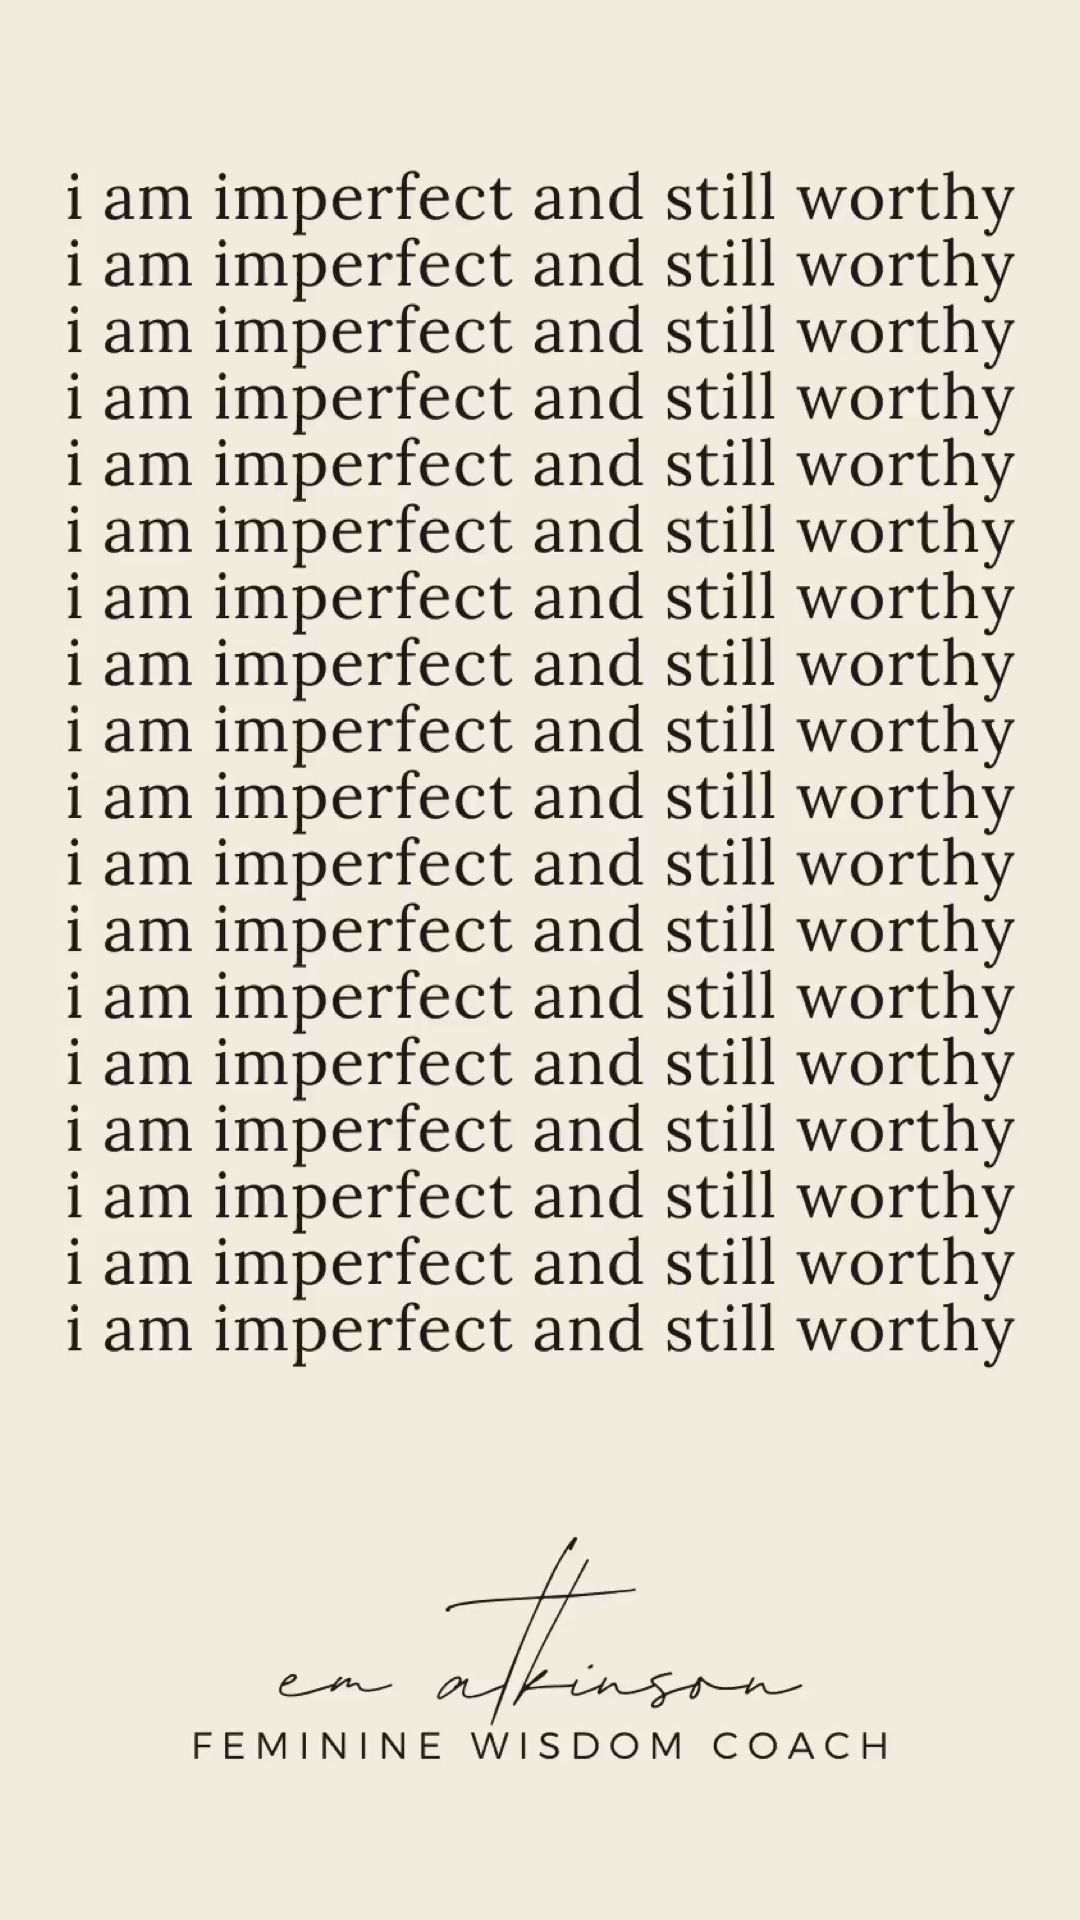 I am imperfect and still worthy.